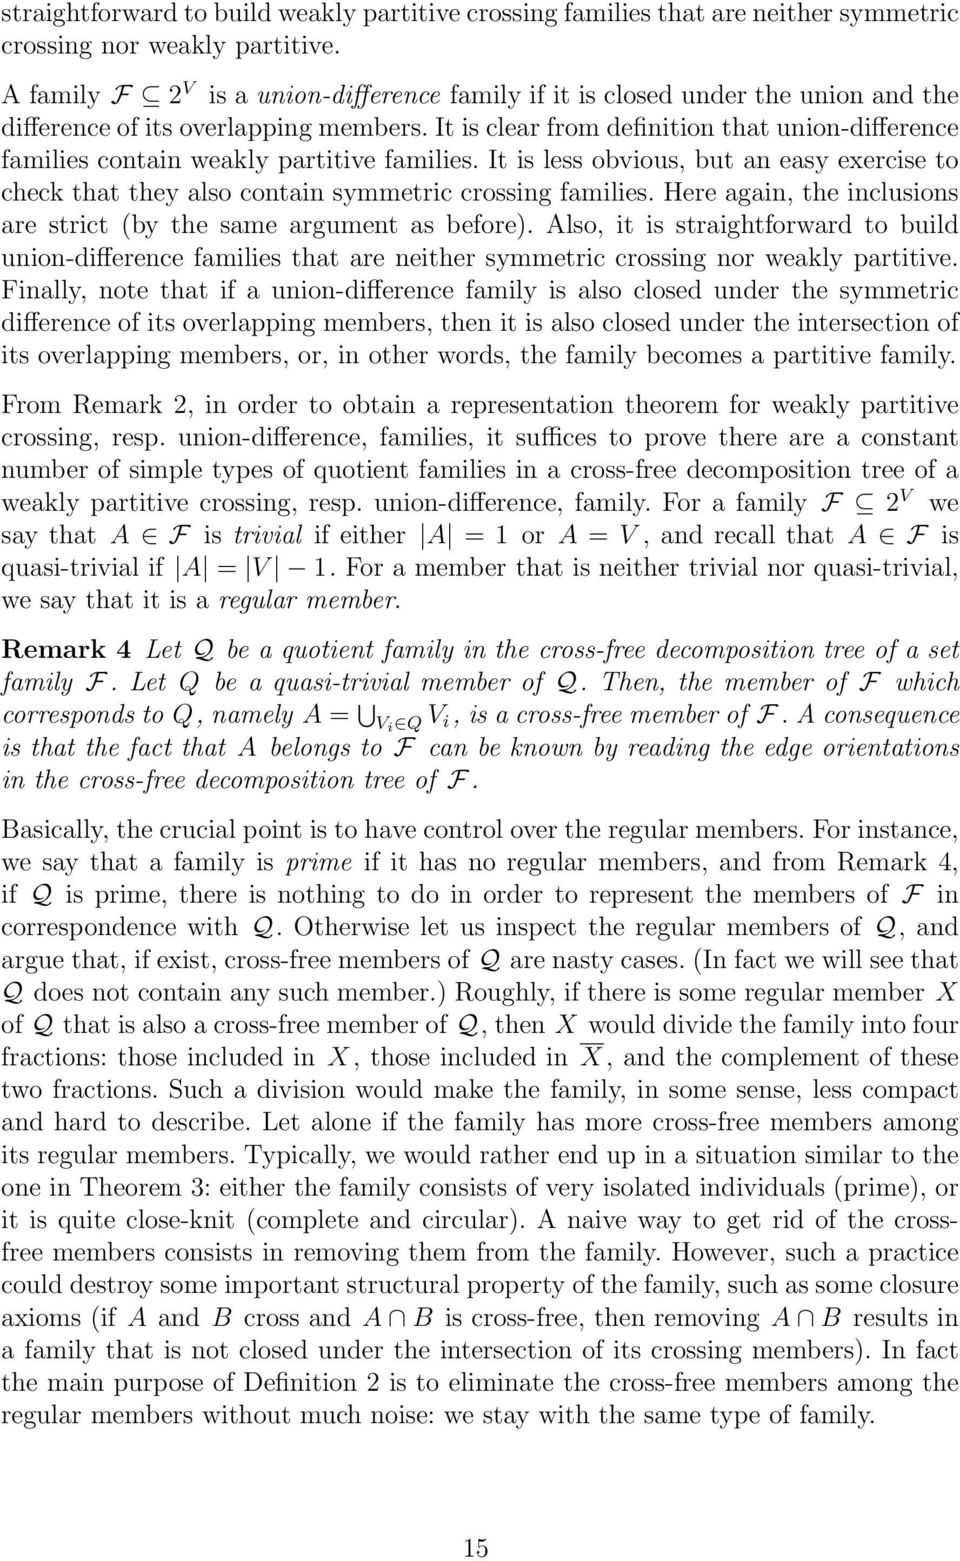 It is clear from definition that union-difference families contain weakly partitive families. It is less obvious, but an easy exercise to check that they also contain symmetric crossing families.